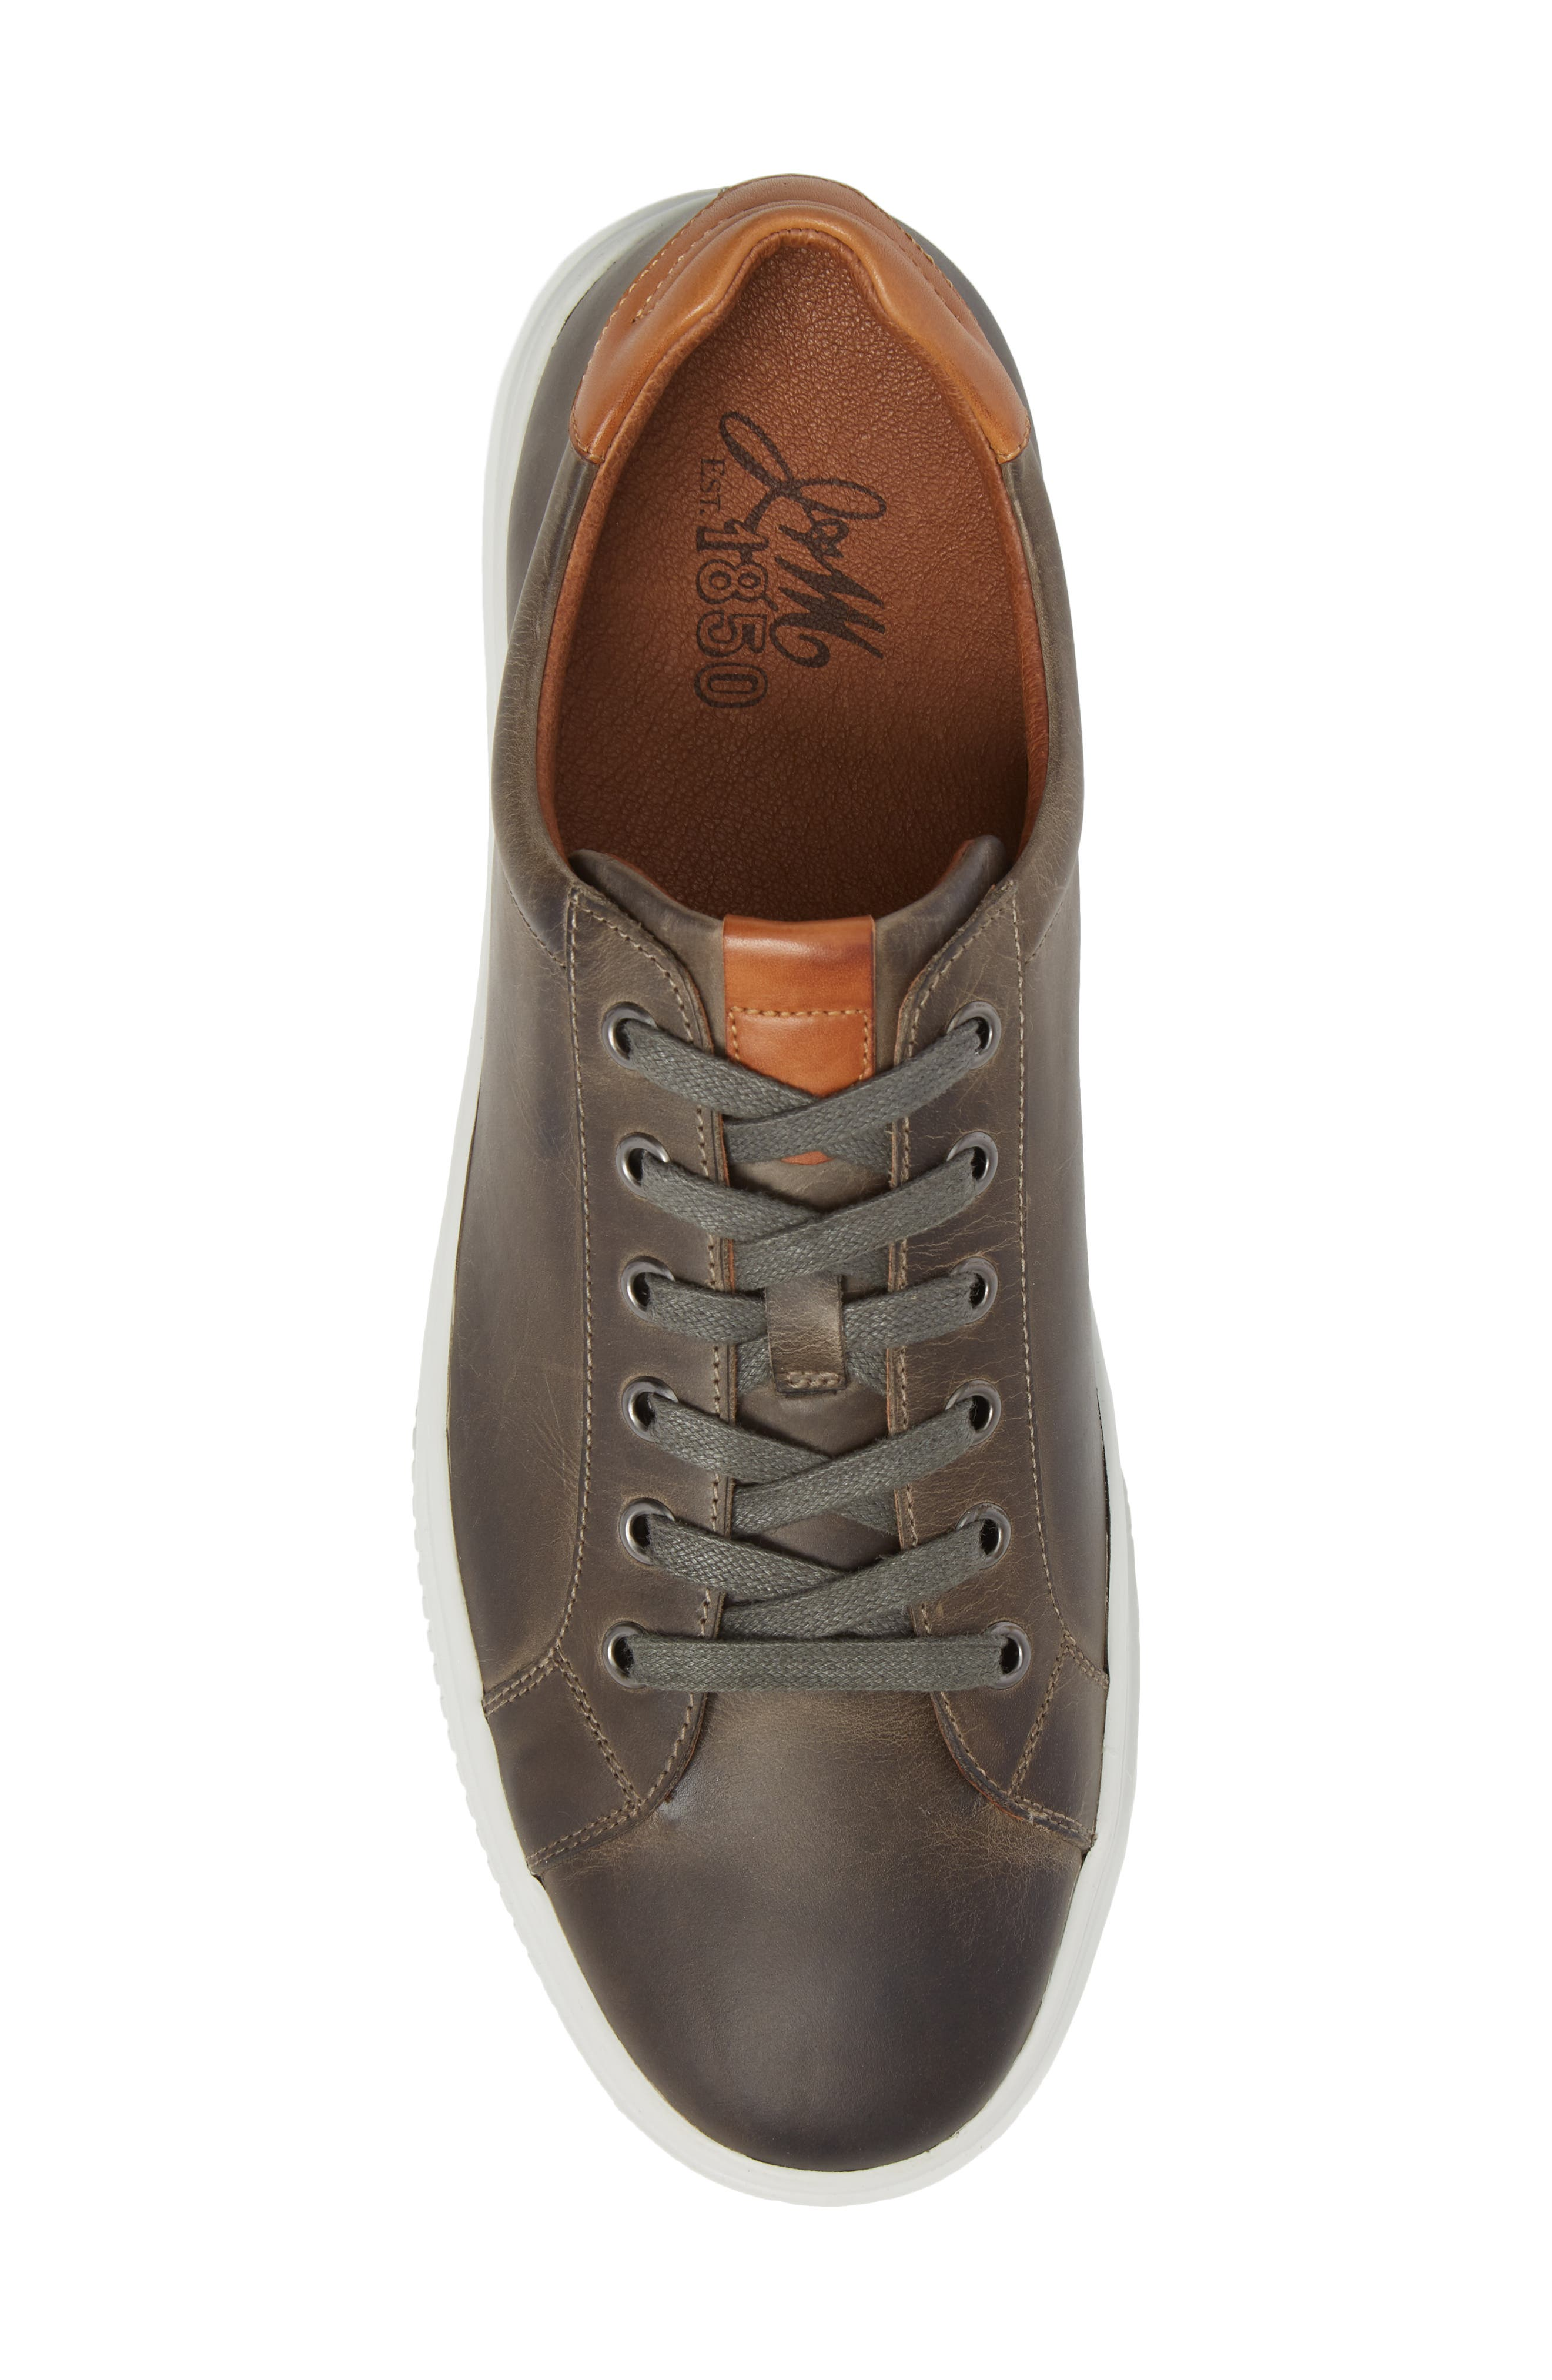 Toliver Low Top Sneaker,                             Alternate thumbnail 5, color,                             GREY LEATHER